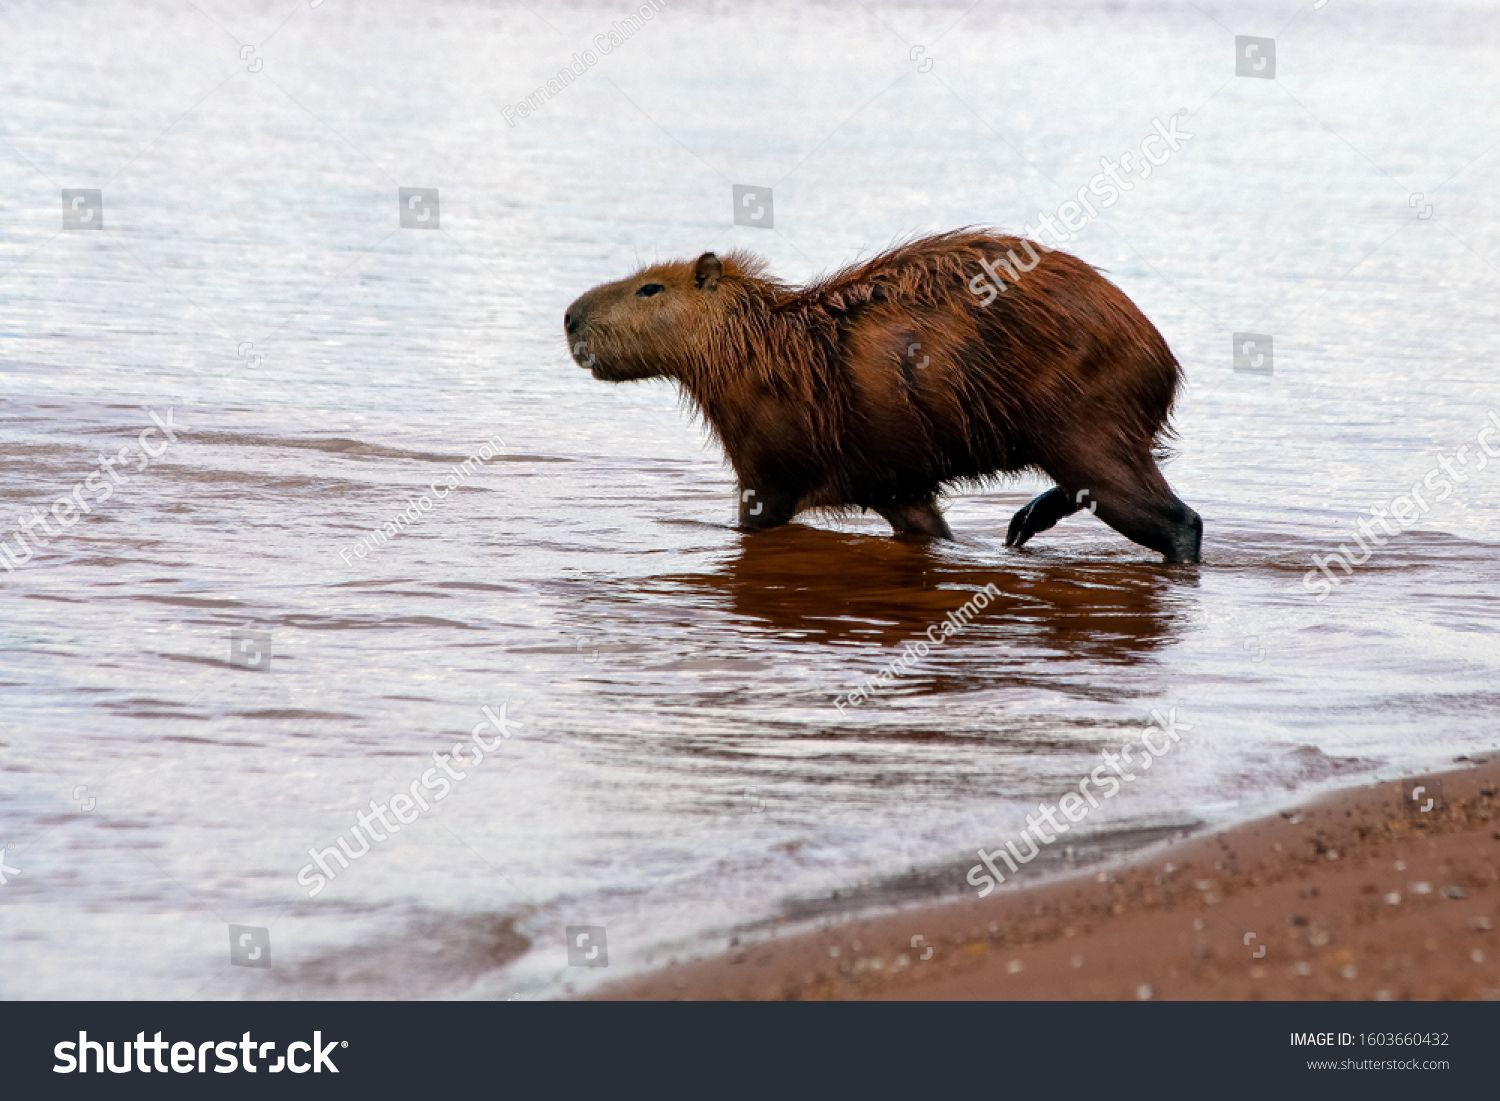 The lonely capybara entering Lake Parano¨¢ in Brasilia, Brazil. The capybara is the largest rodent in the world. Species Hydrochoerus hydrochaeris. Wildlife. Cerrado. #Ad , #AD, #Parano#Brasilia#Brazil#Lake